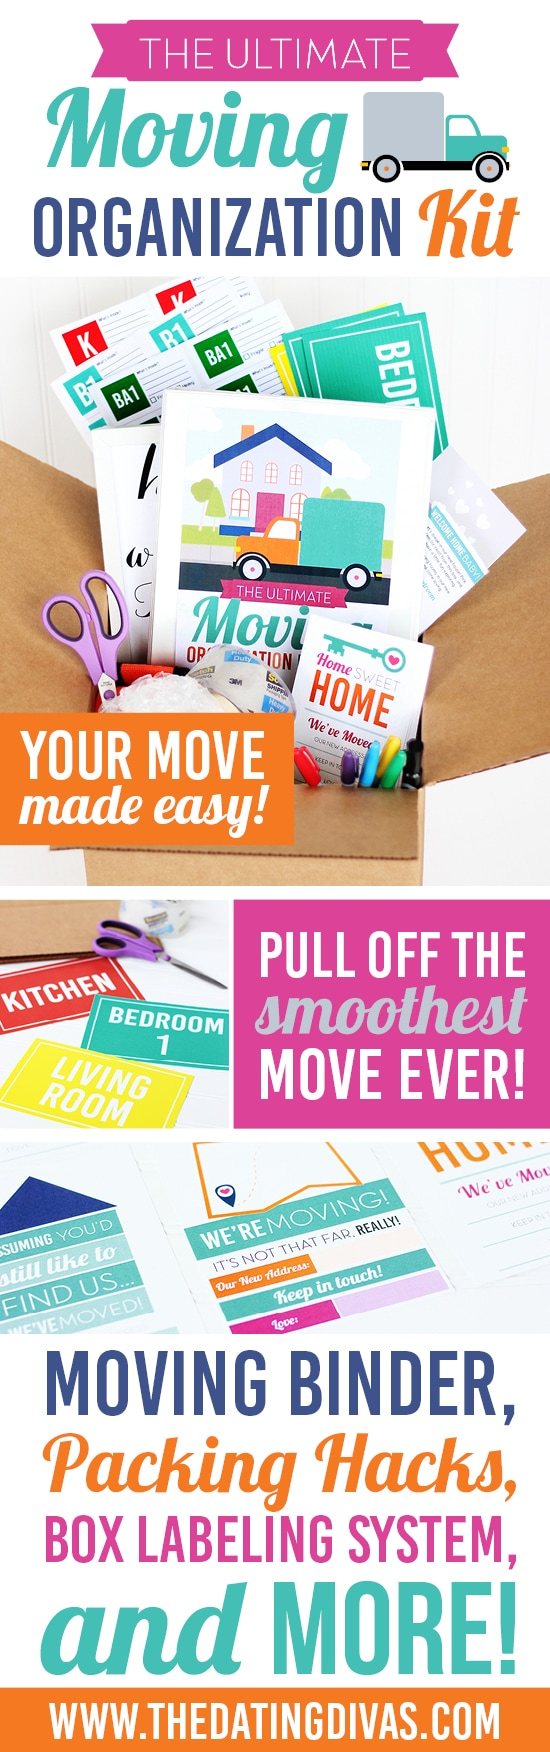 SO many awesome moving tips in this Moving Organization Kit & Binder! #TheDatingDivas #MovingTips #MovingMadeEasy